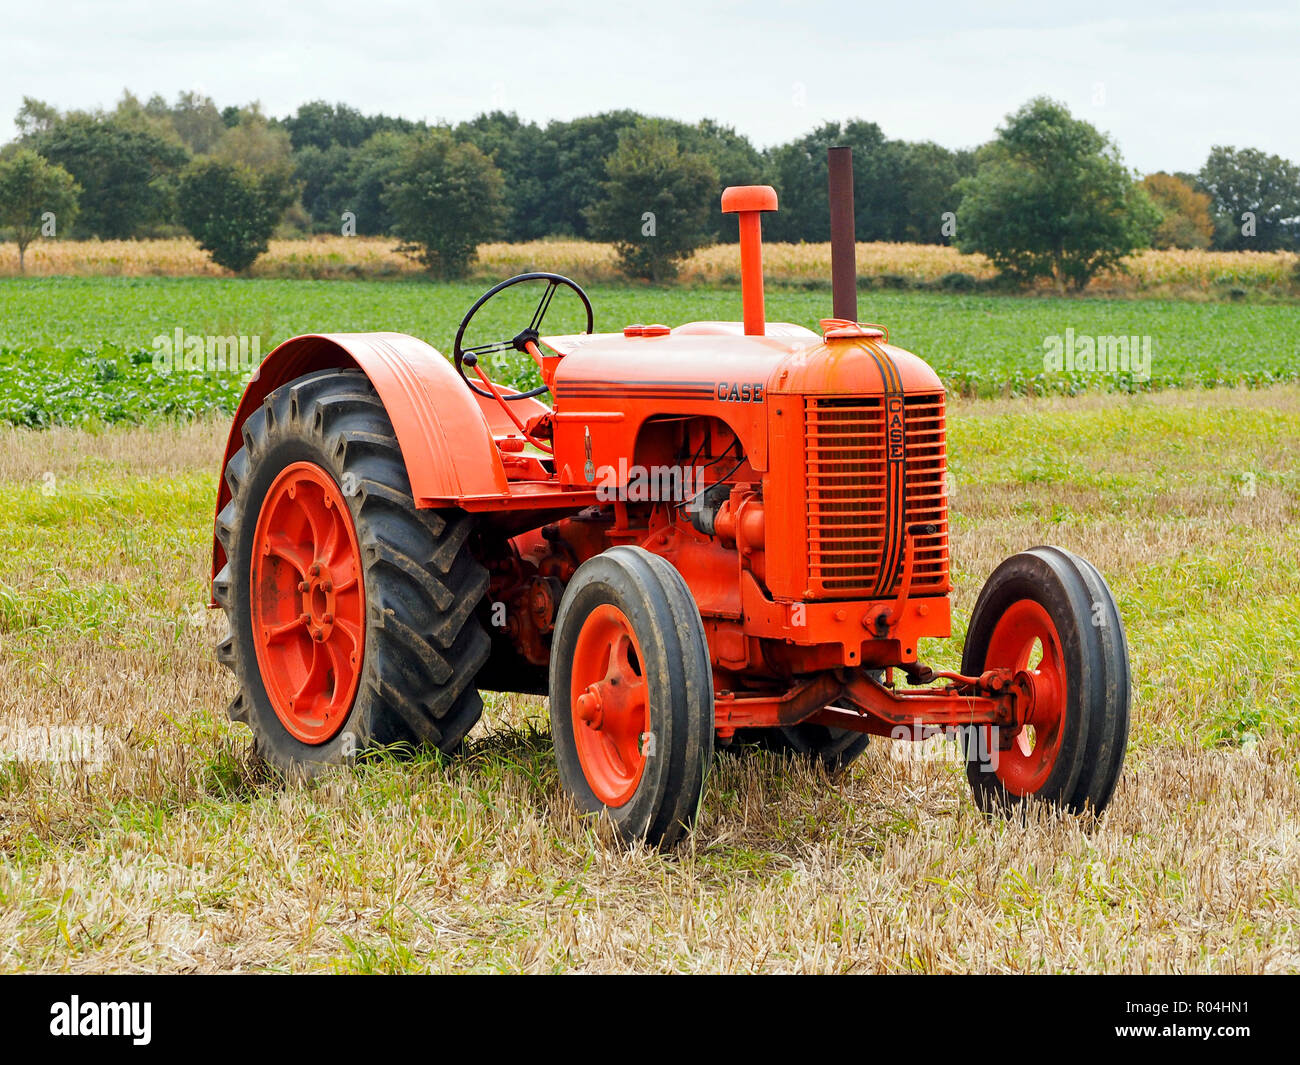 Case Model L - a classic American made tractor from the 1940's Stock Photo